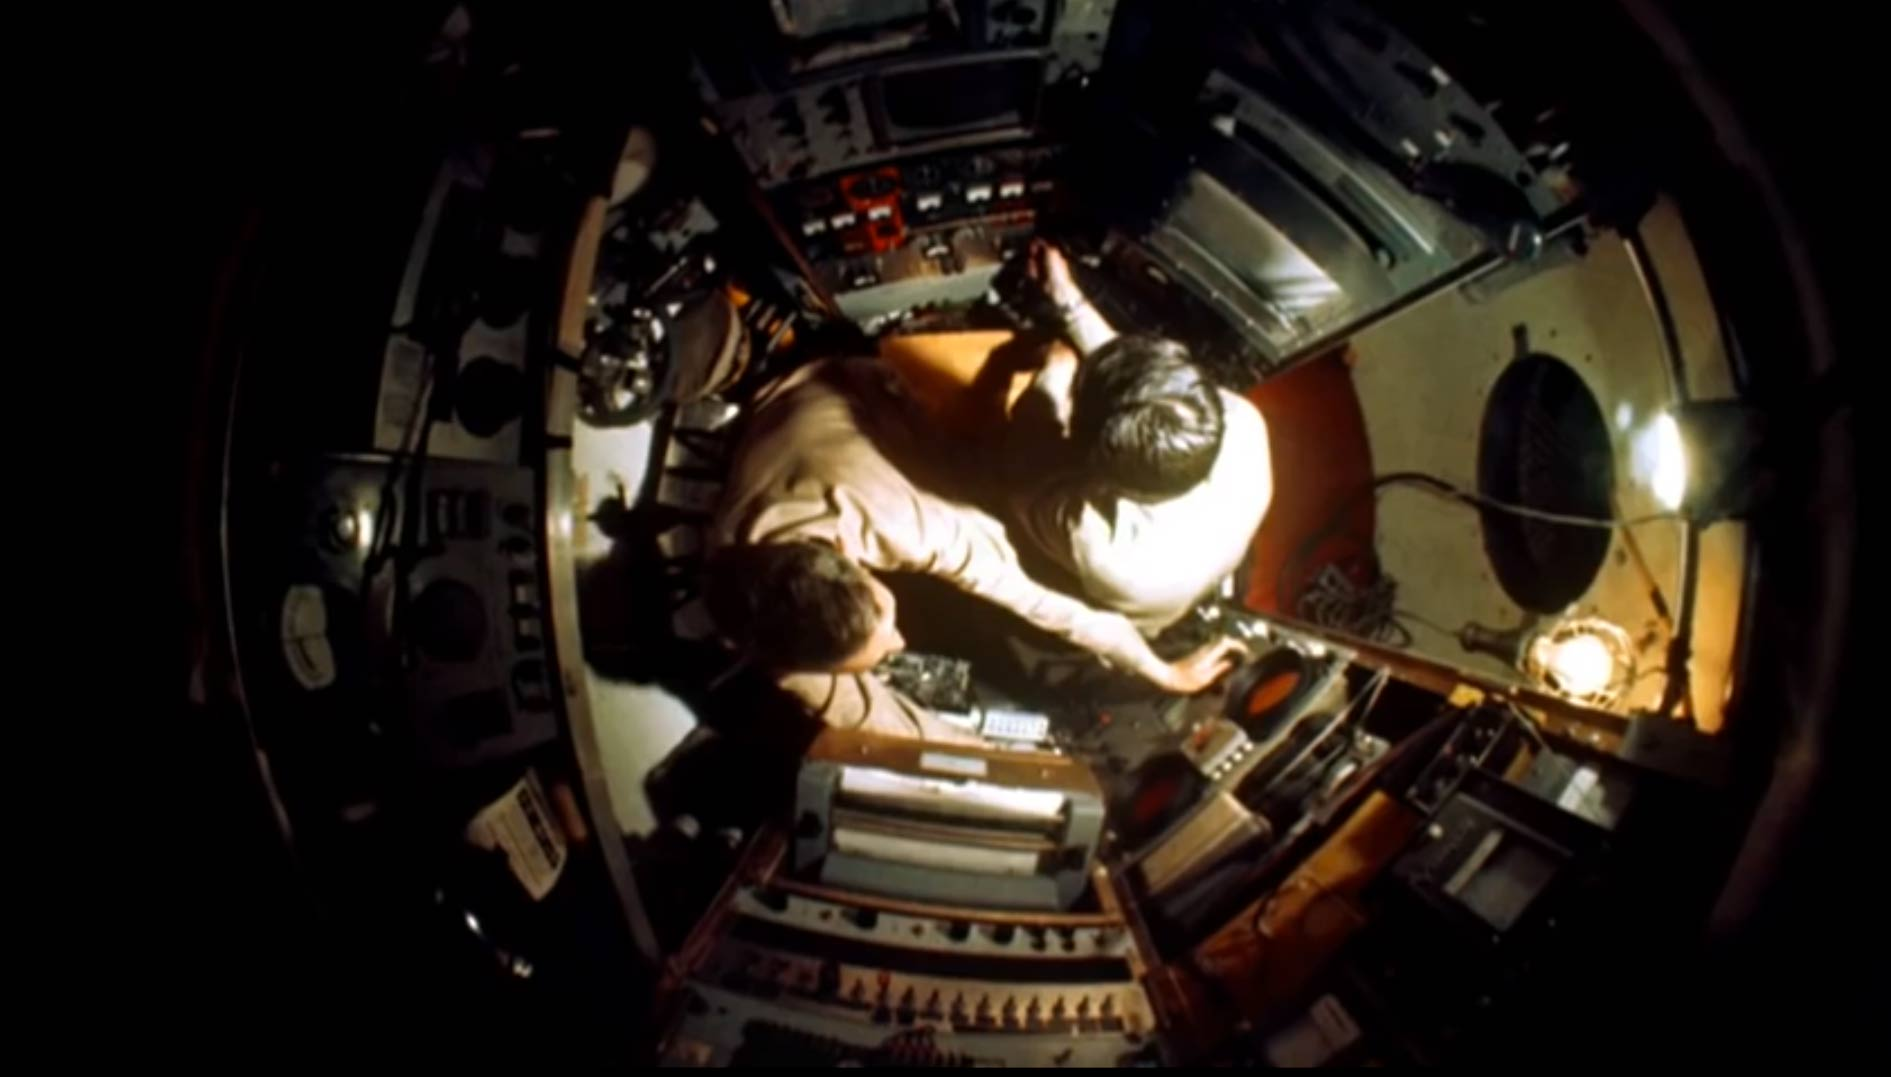 Jacques Piccard and Don Walsh in the Trieste's sphere during the record-breaking dive in the Marianas Trench, January 23, 1960.